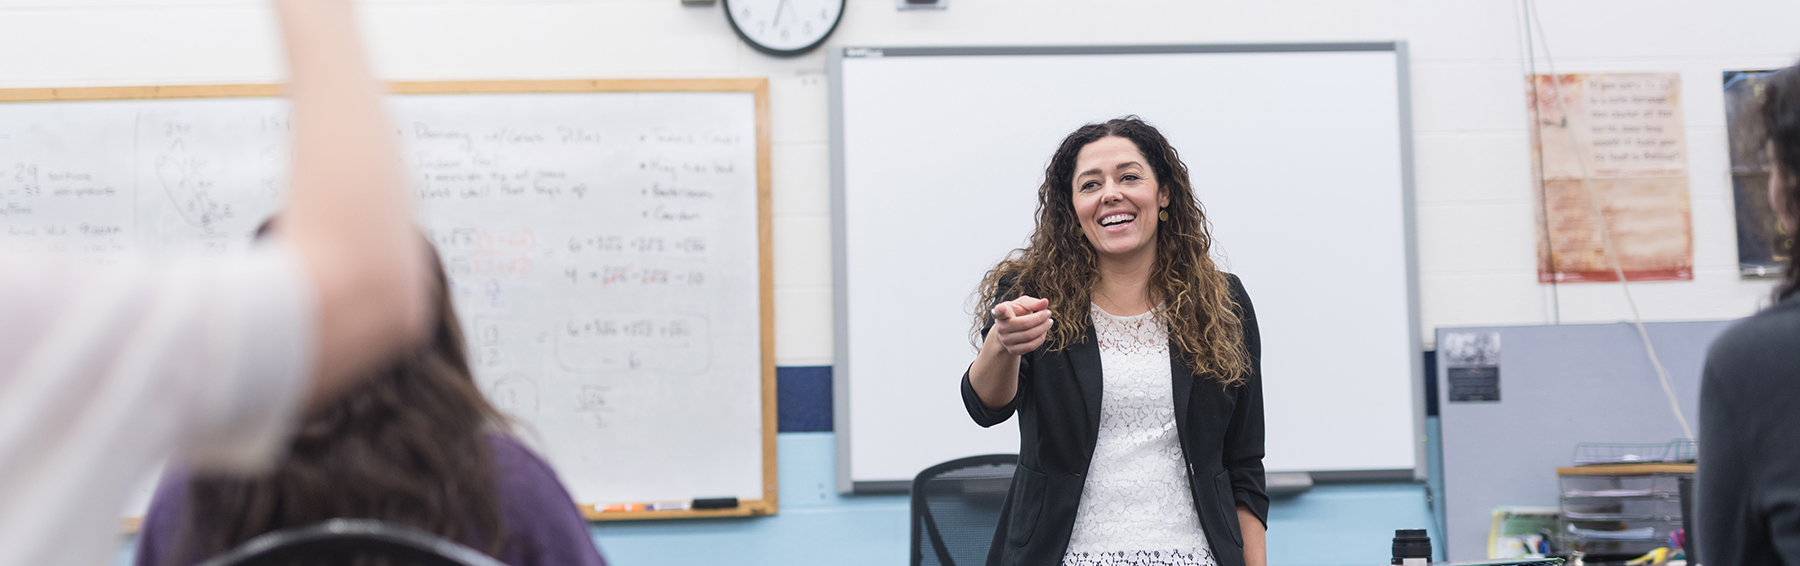 Teacher at the front of class pointing to call on student